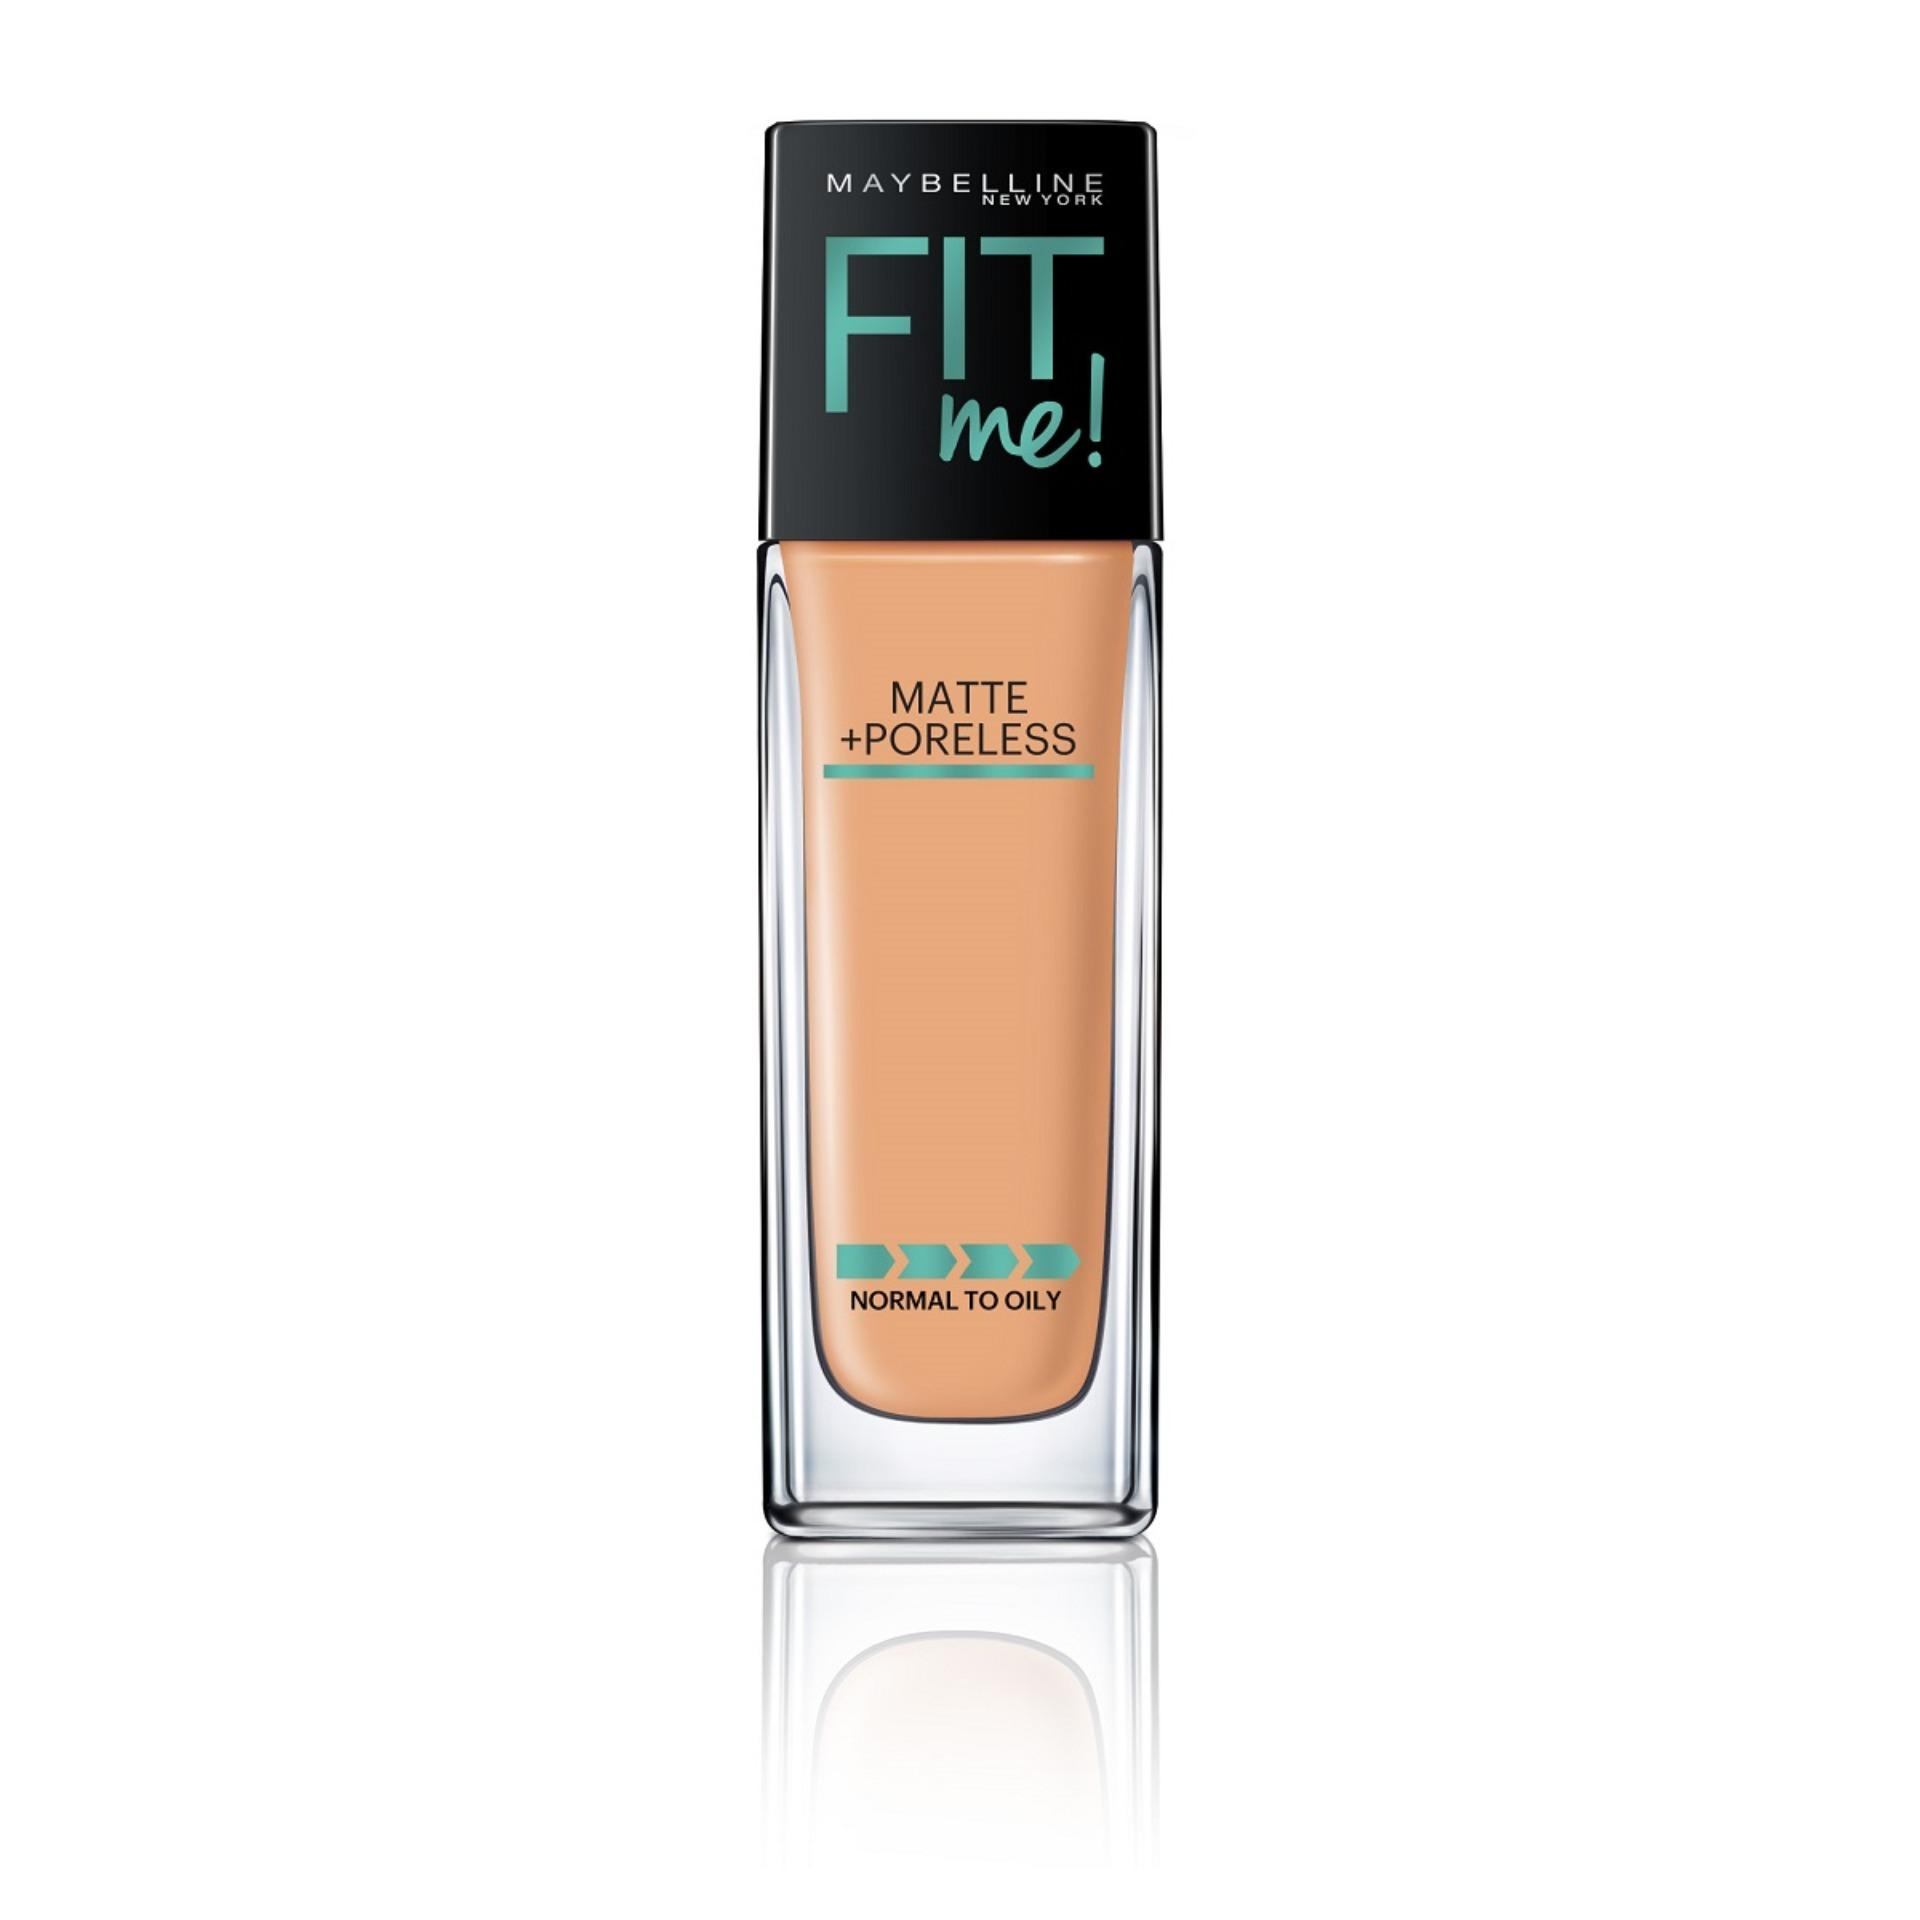 Beli Maybelline Fit Me Matte Poreless Foundation 230 Natural Buff Murah